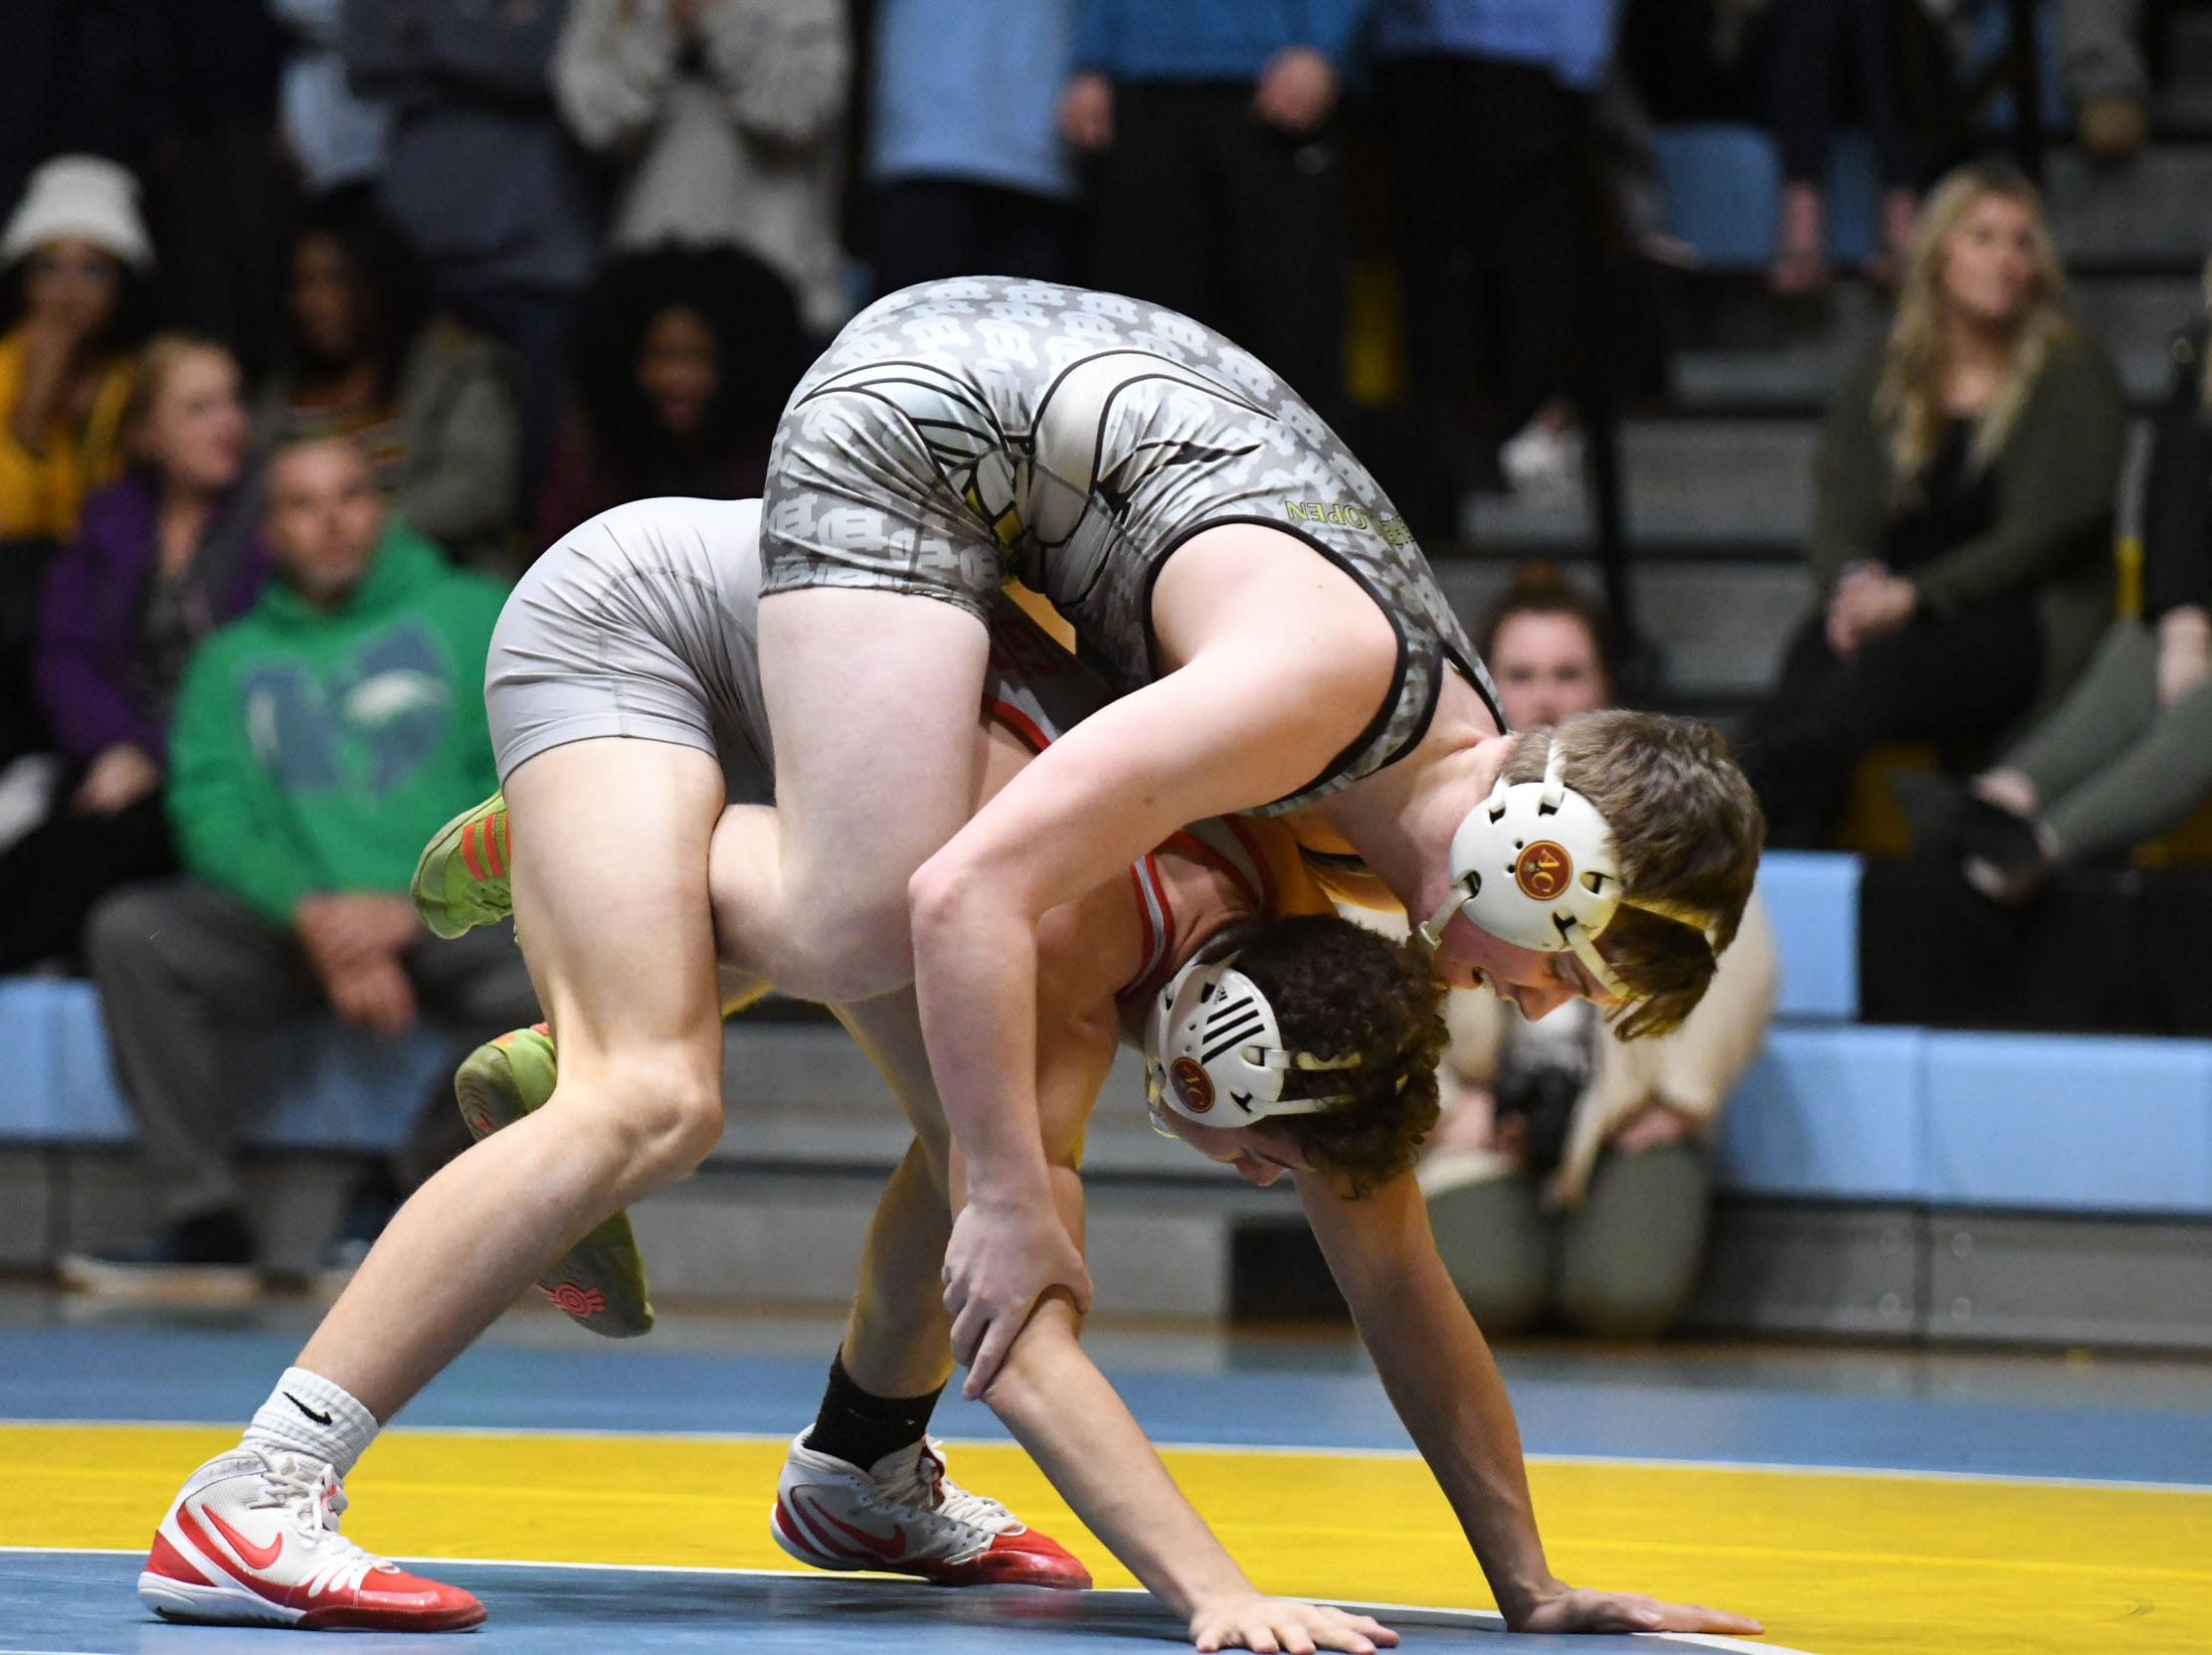 Cape's Jackson Handlin took on Smyrna's Gavin Sembly during the 160lb weight class on Wednesday, Jan. 10, 2019. Cape won the match 34-33.